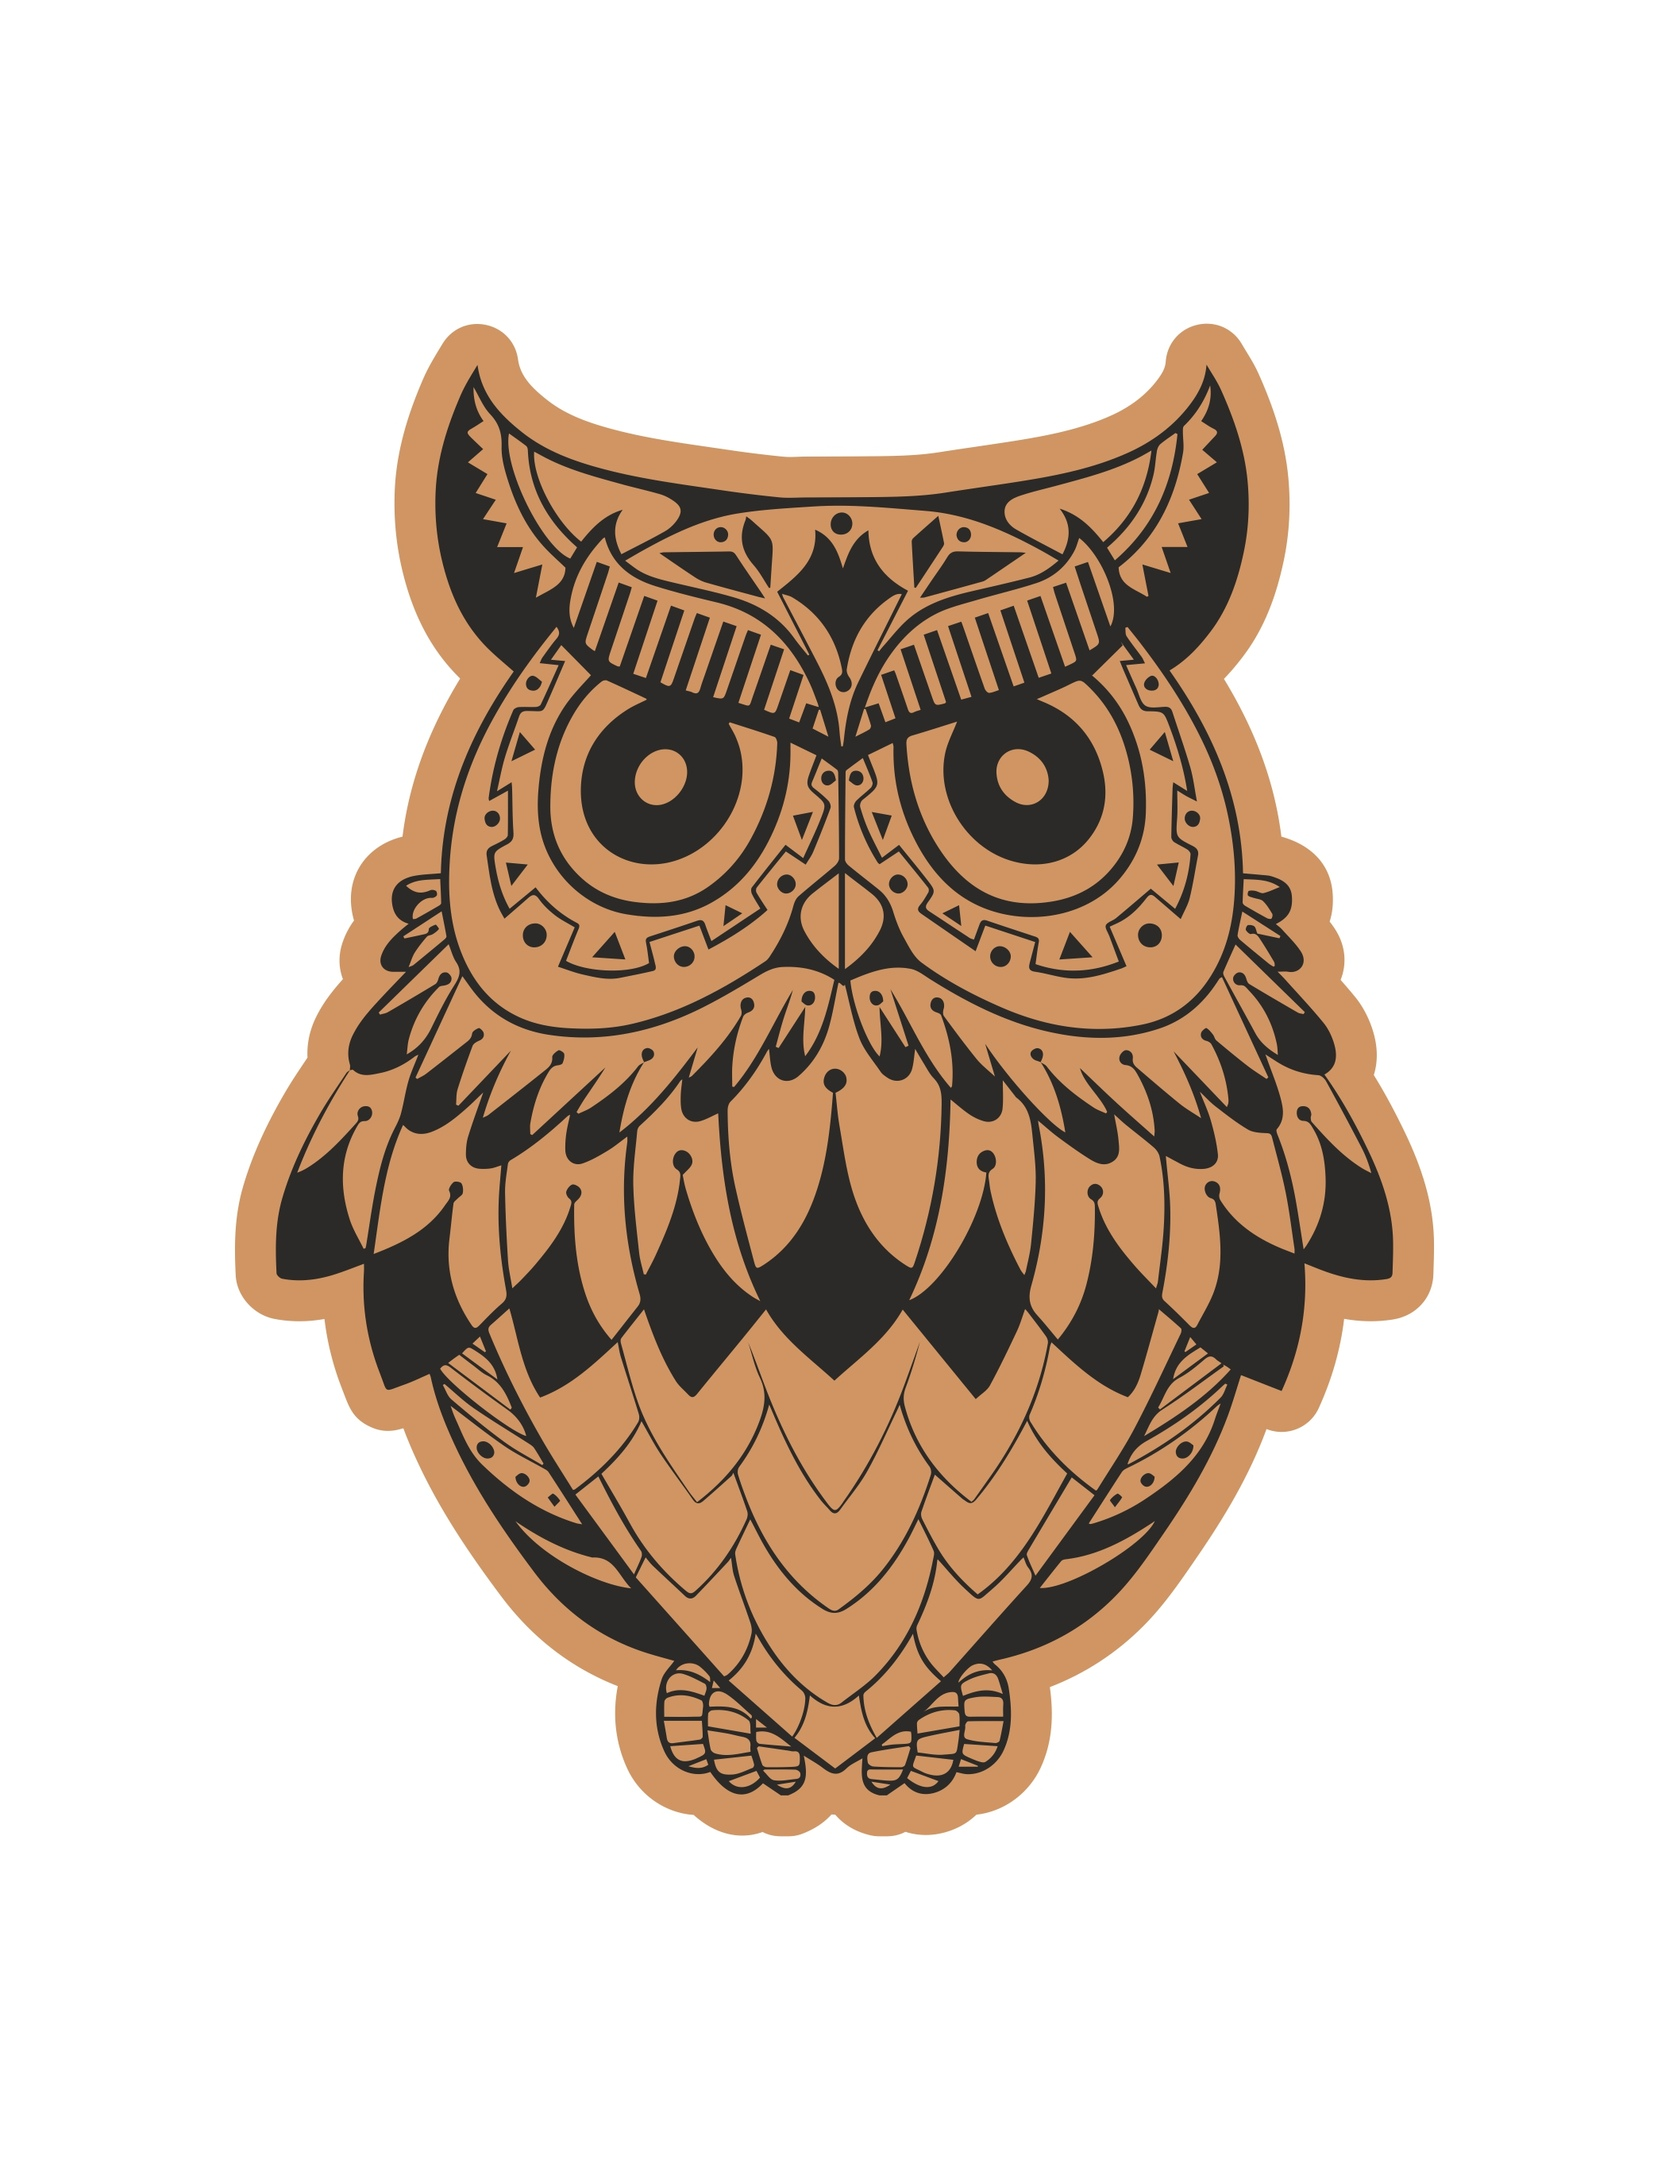 Angry Owl Laser Cut Engraving Template Free Vector